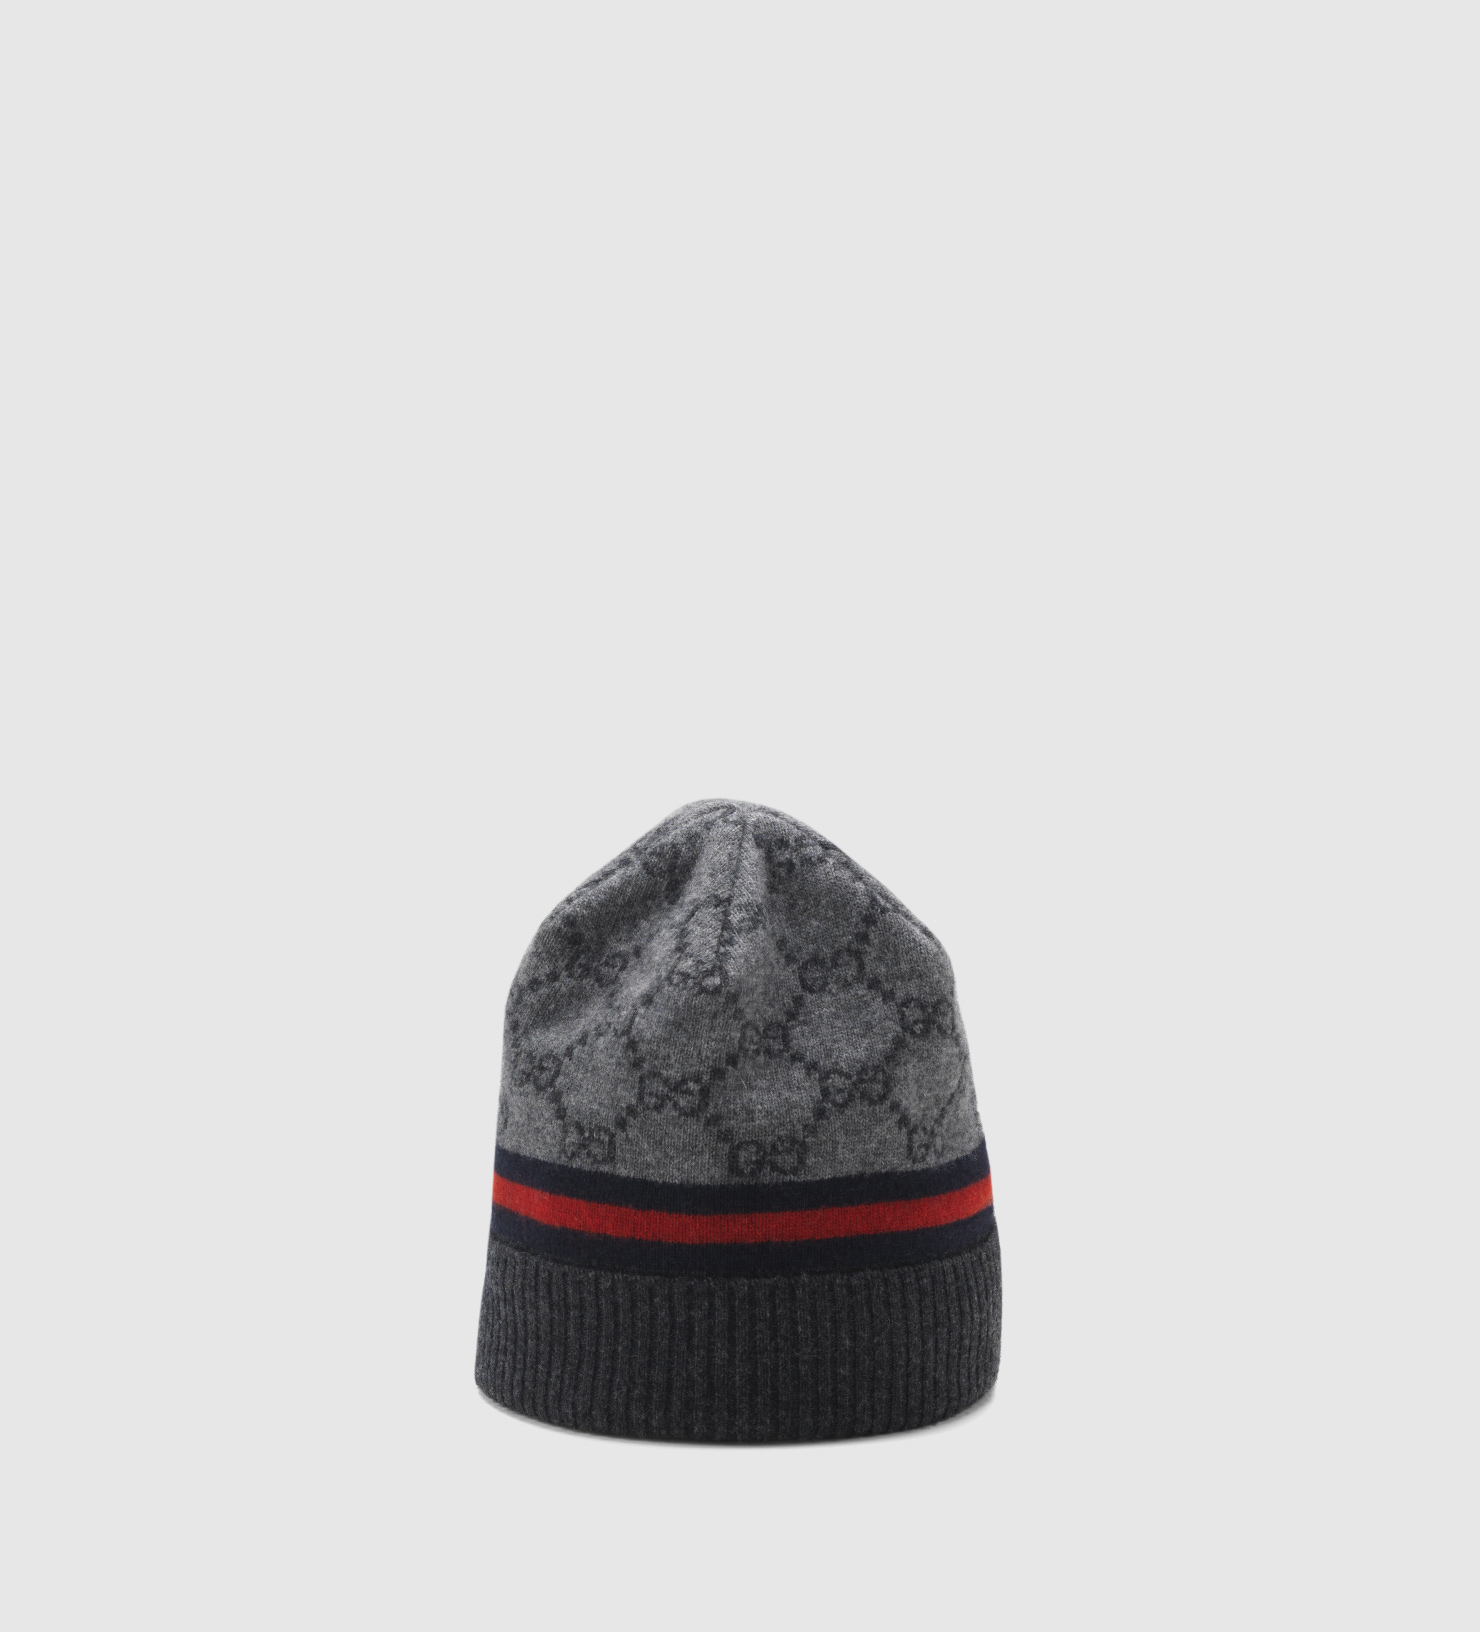 Gucci Gg Pattern Hat With Web Detail in Gray for Men - Lyst 889ddc19c44